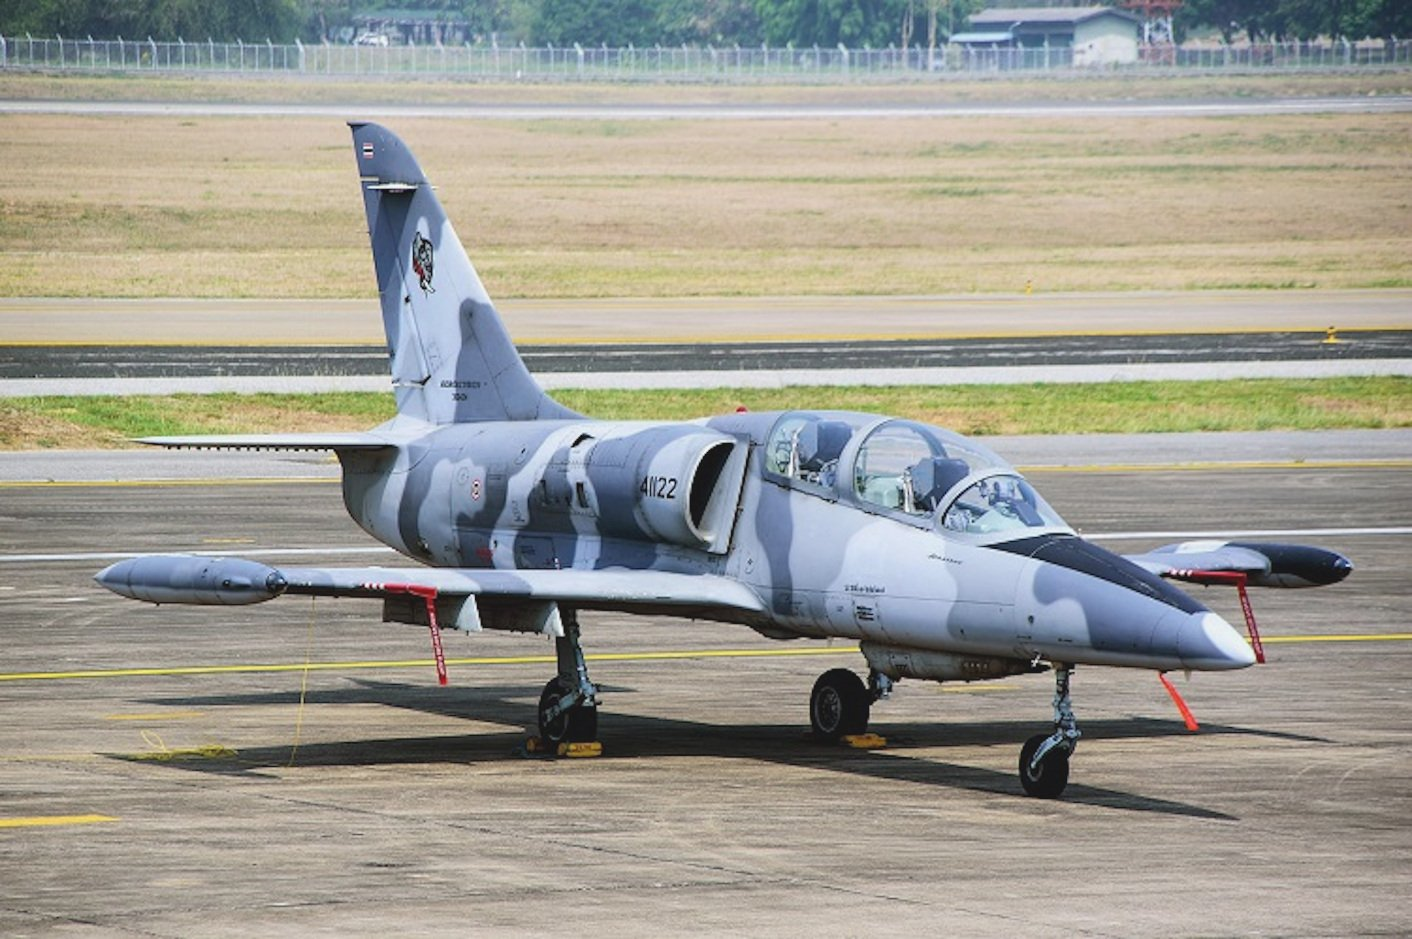 L-39ZA/ART Albatros [Royal Thai Air Force]